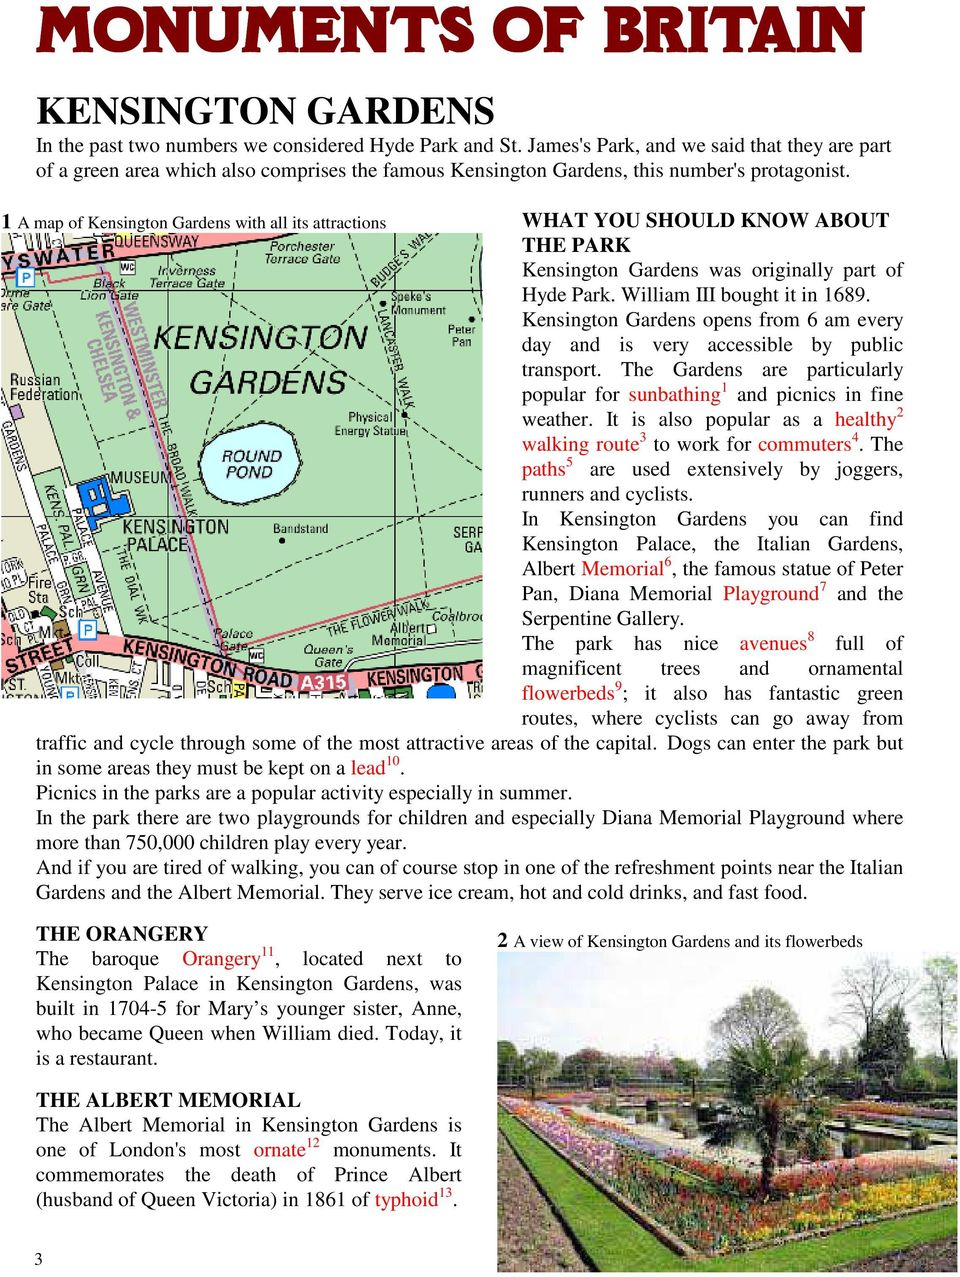 WHAT YOU SHOULD KNOW ABOUT THE PARK Kensington Gardens was originally part of Hyde Park. William III bought it in 1689.